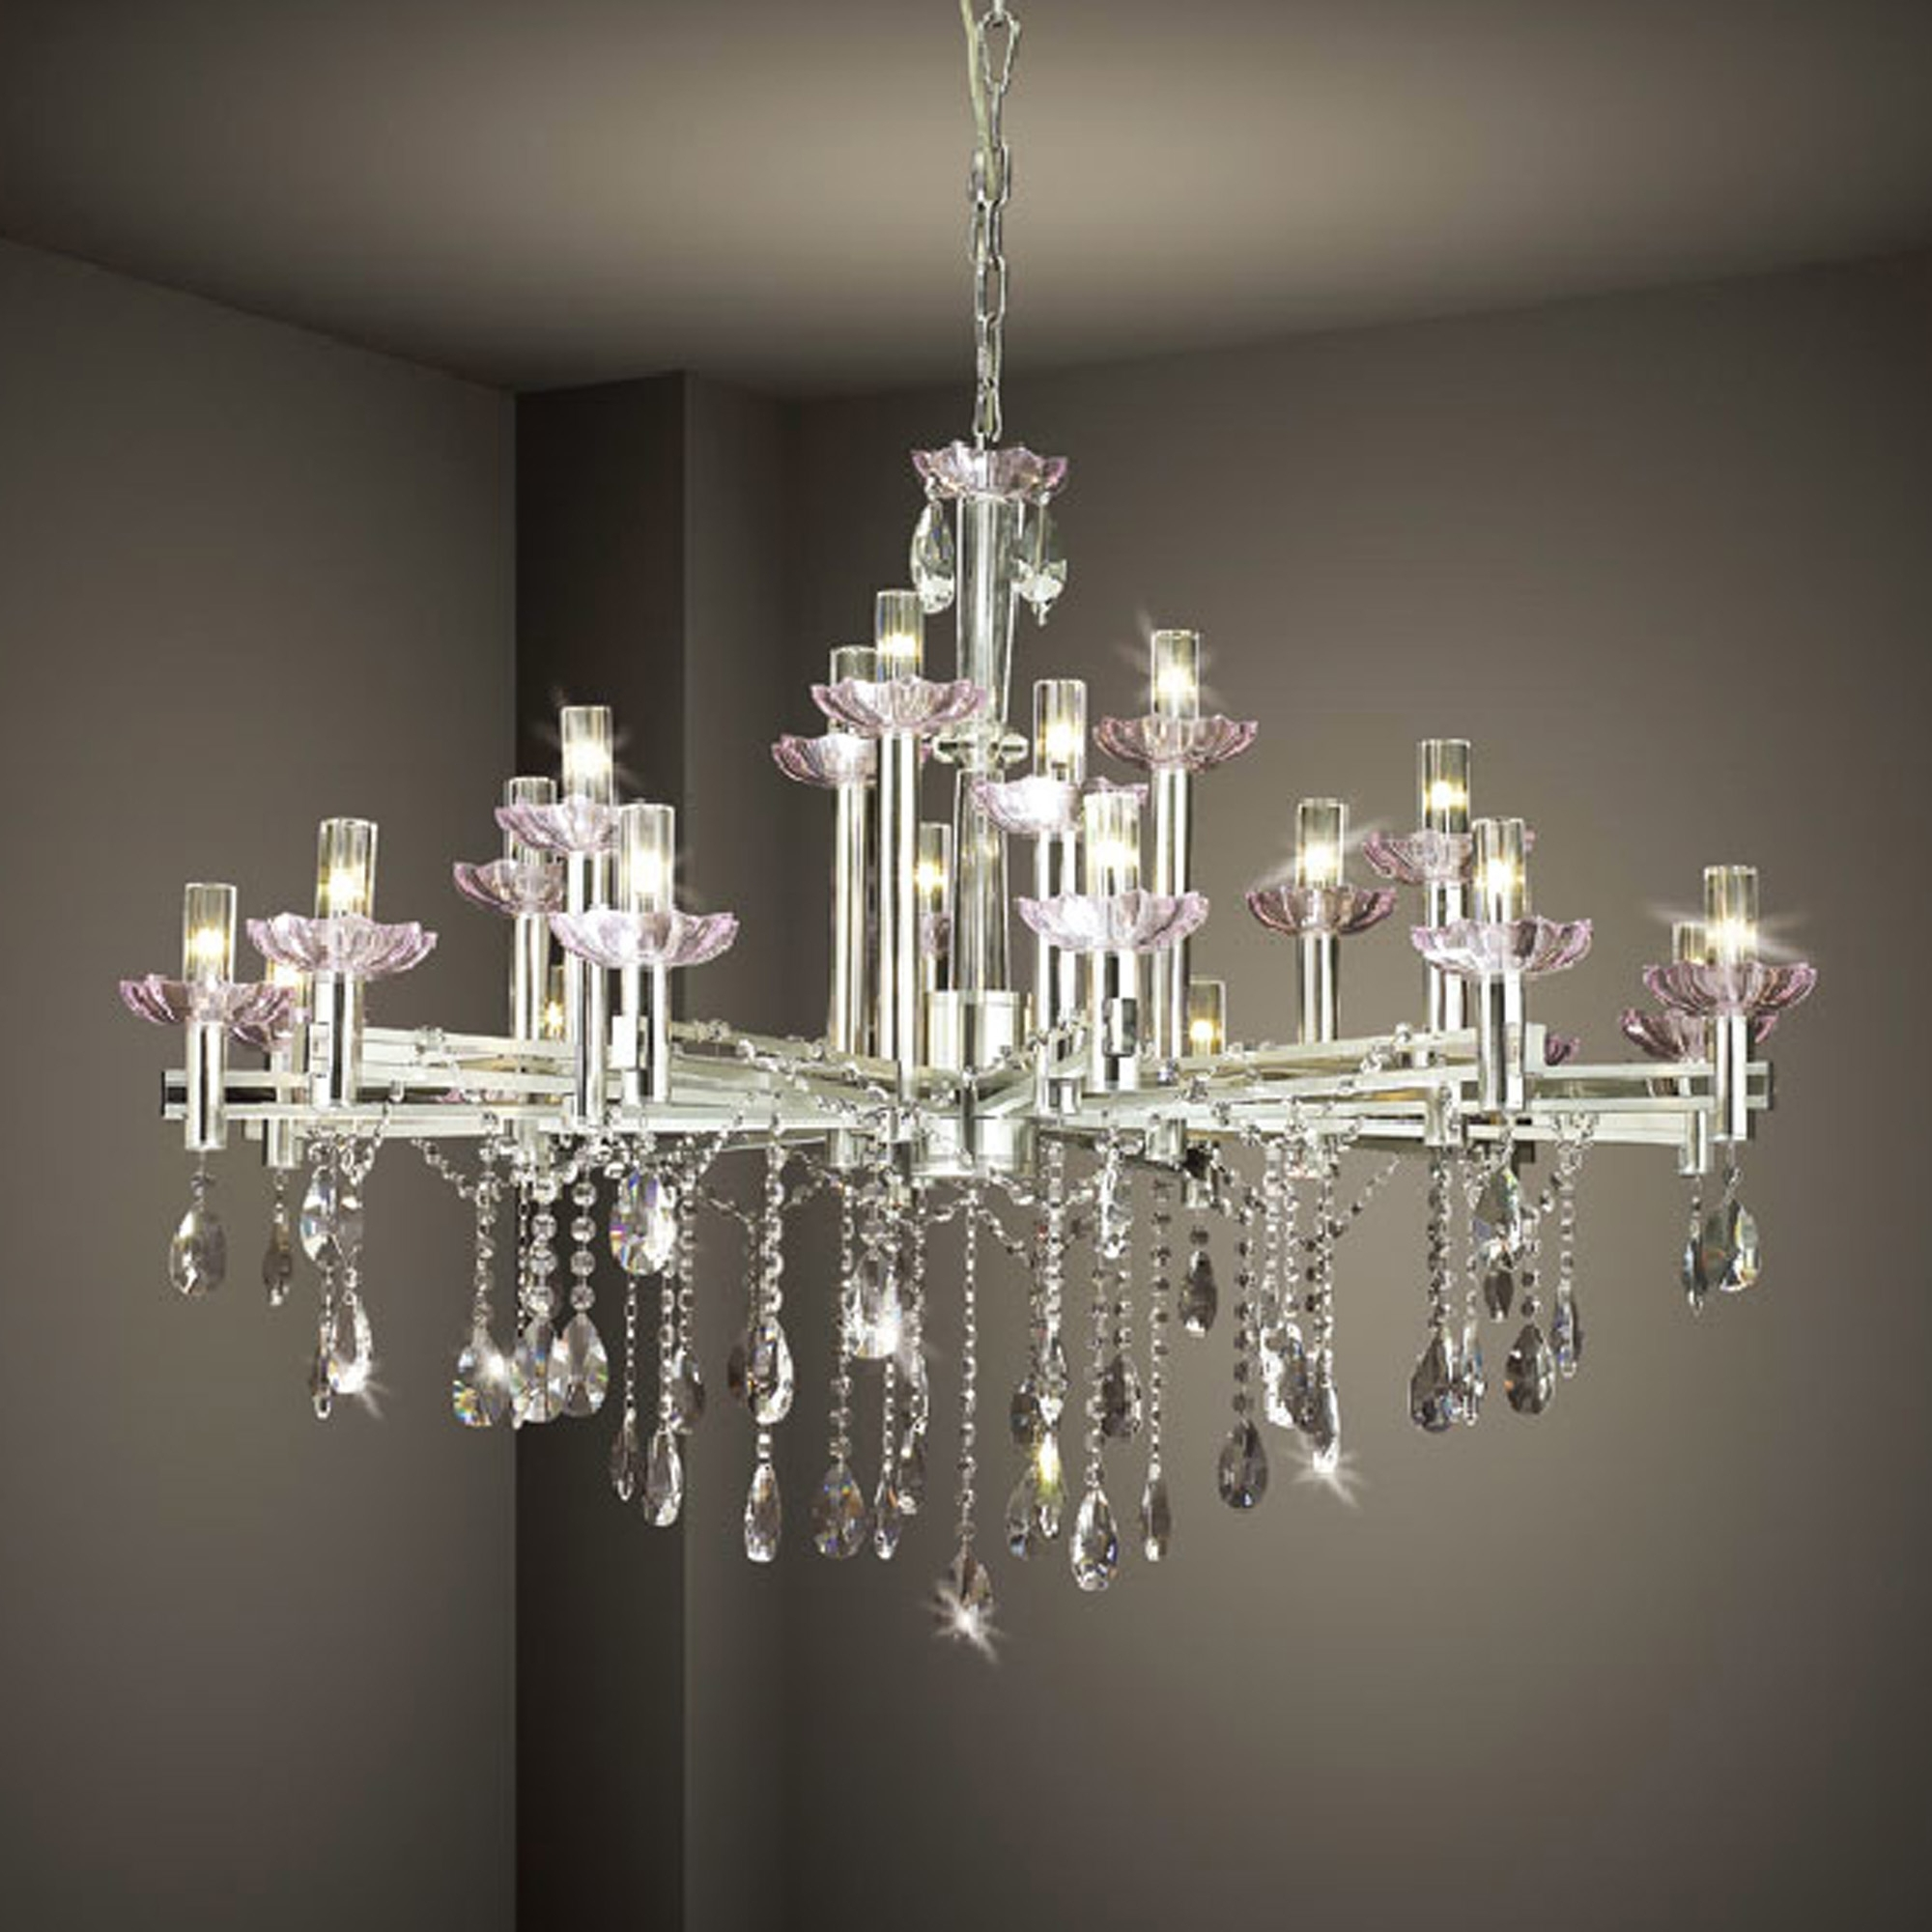 Preferred Chandelier: Inspiring White Modern Chandelier White And Crystal Intended For White Contemporary Chandelier (View 8 of 20)